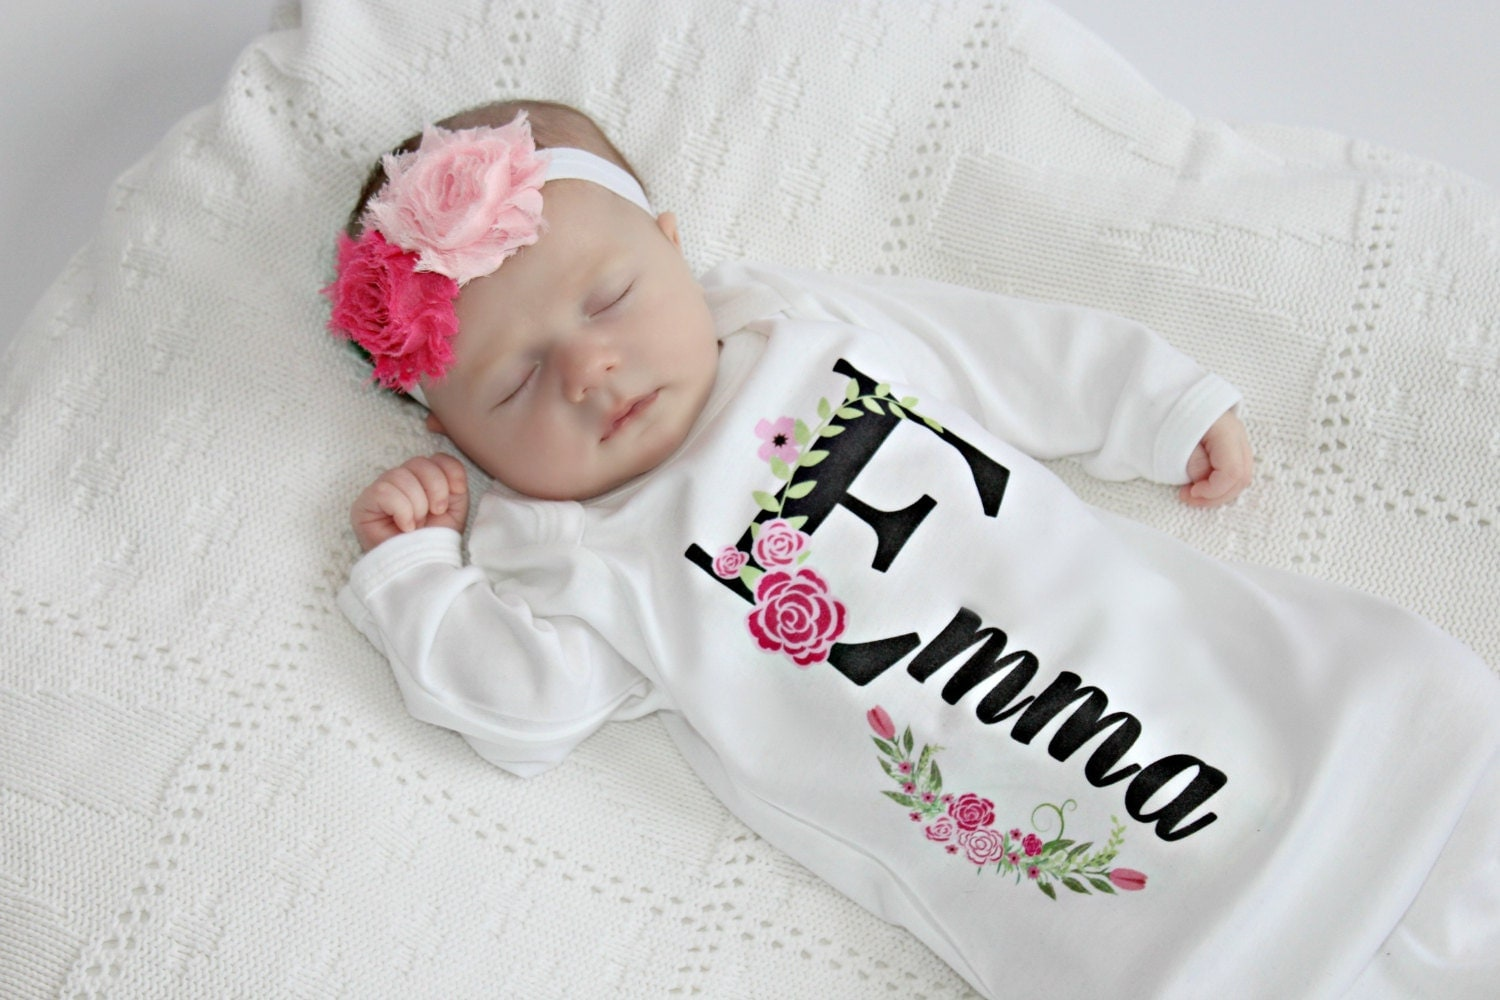 Find great deals on eBay for baby girl outfit newborn. Shop with confidence.